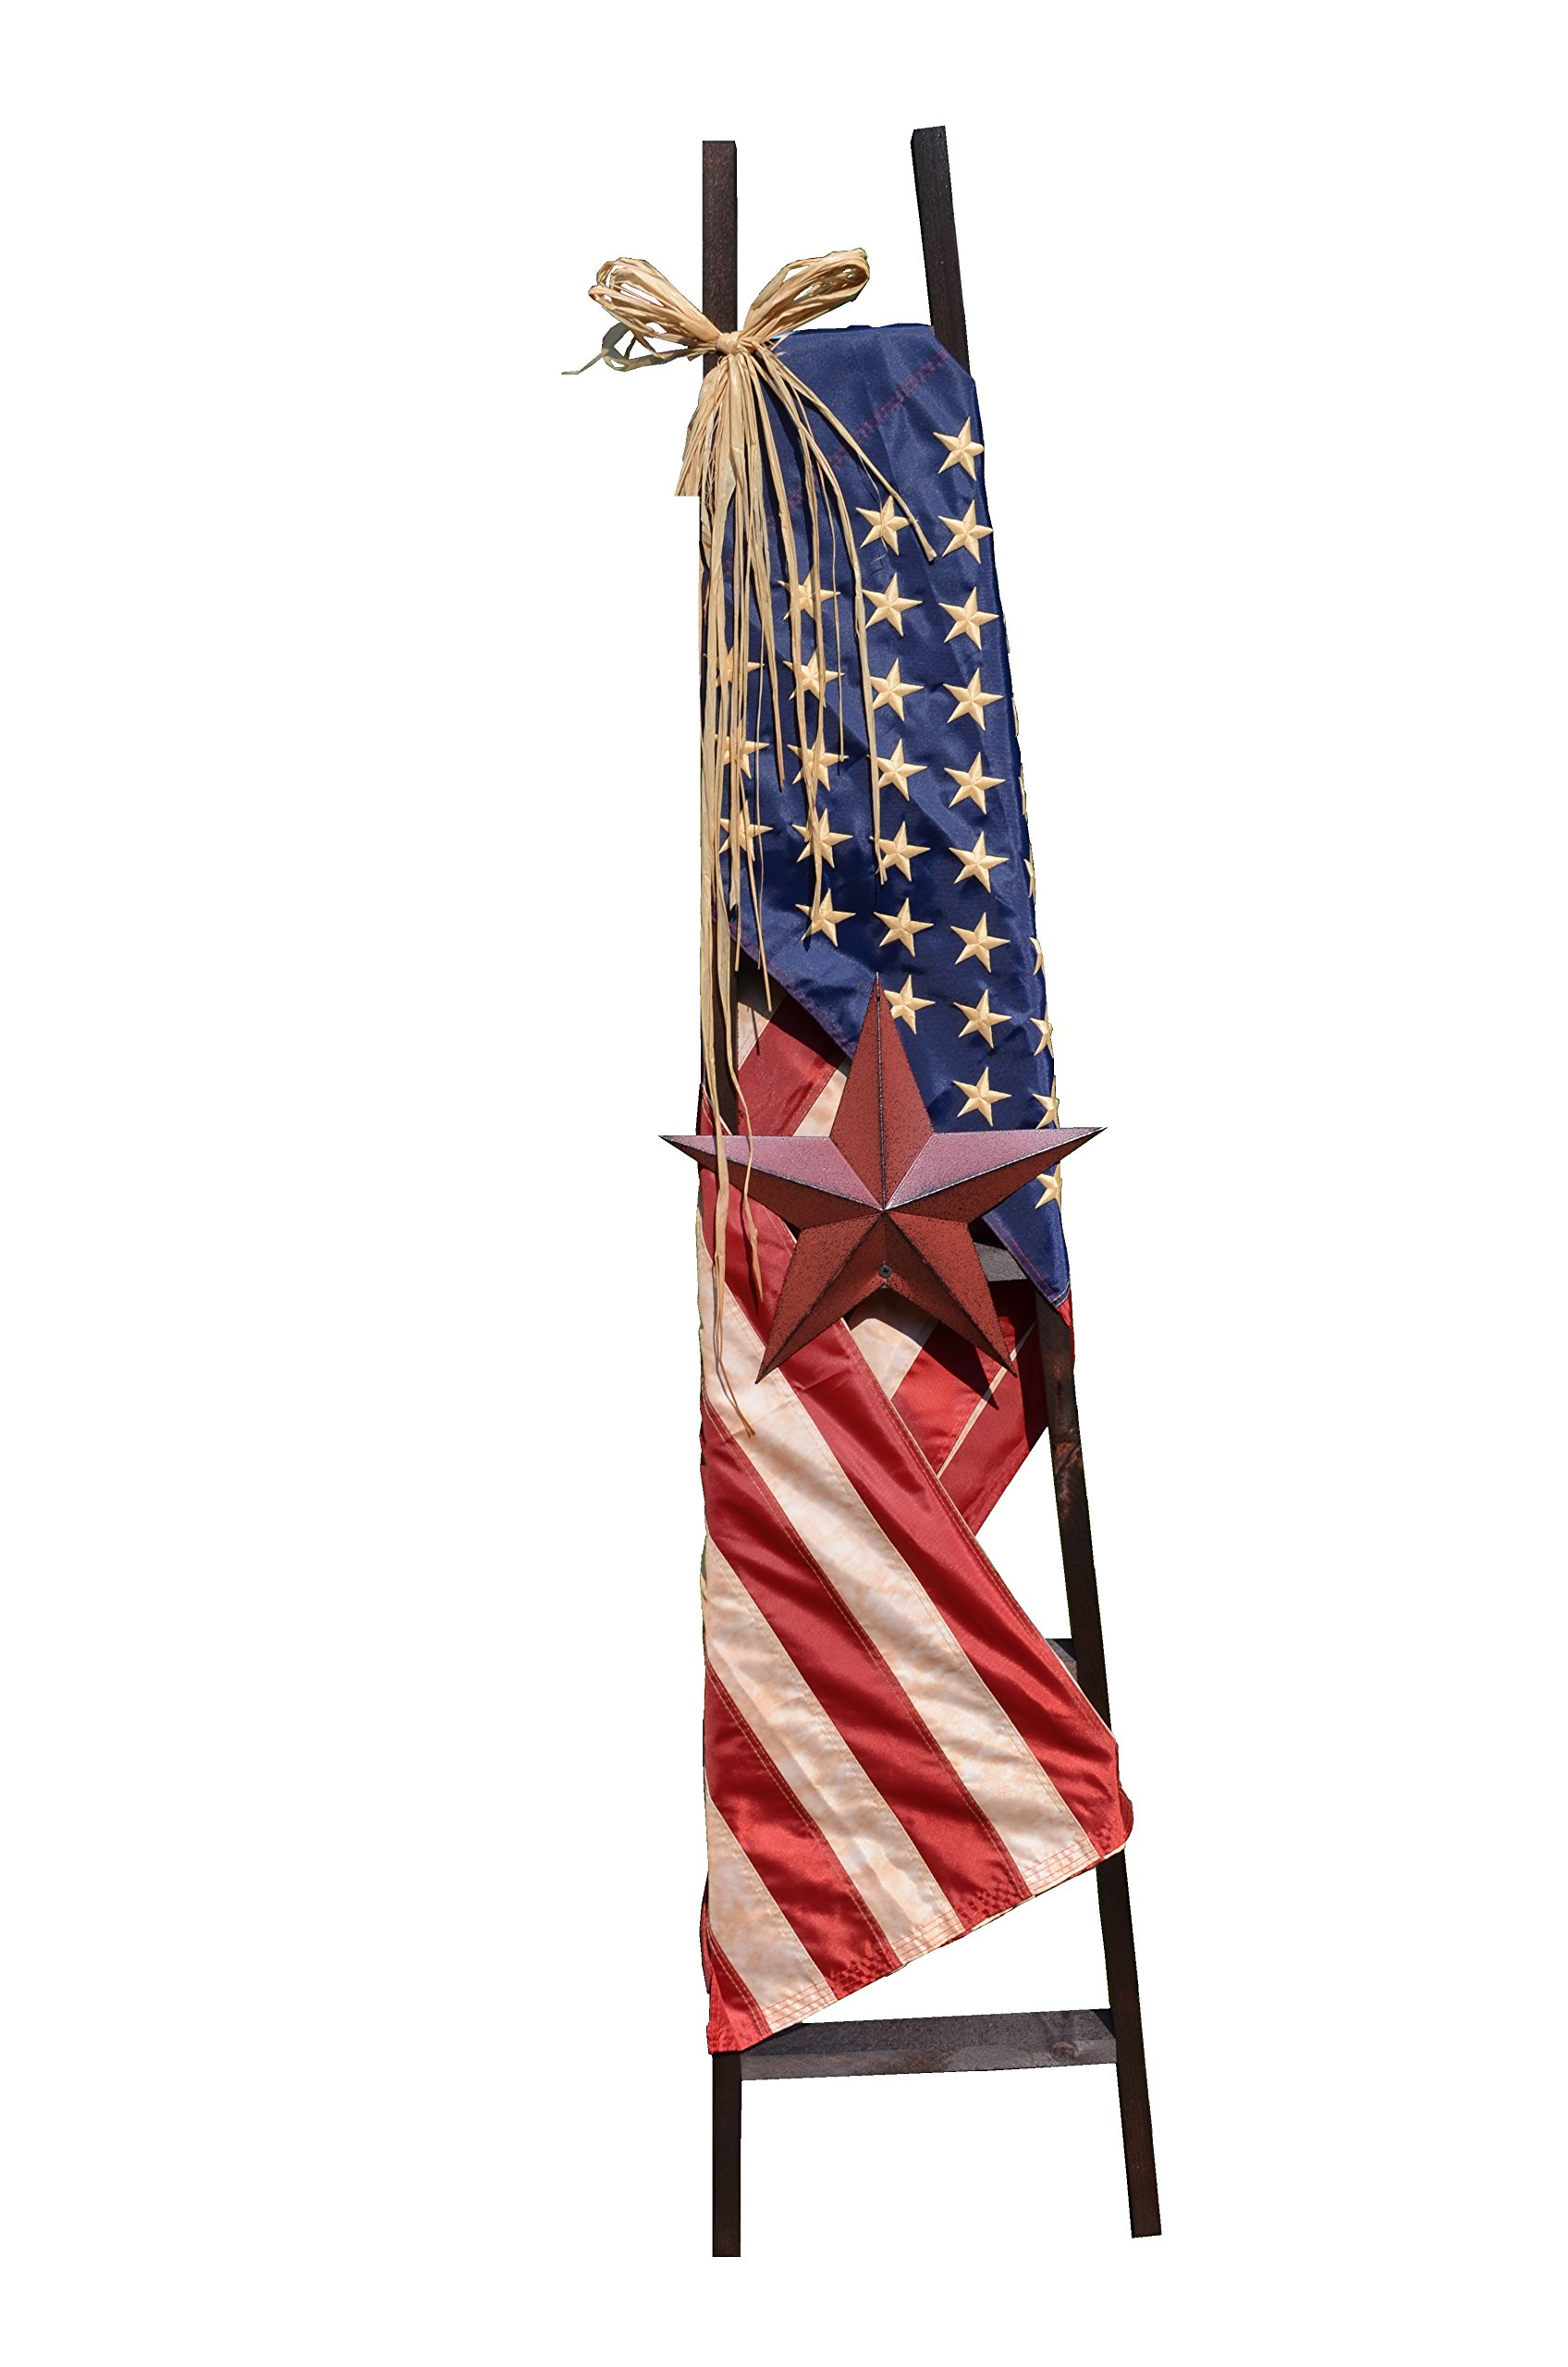 5 foot tall 5 Rung Wood Ladder with Draped American Flag, 12'' Rustic Burgundy Barn Star, and Raffia. The tea stained flag is nice quality with thread stitched stars. The stripes also have stitching.